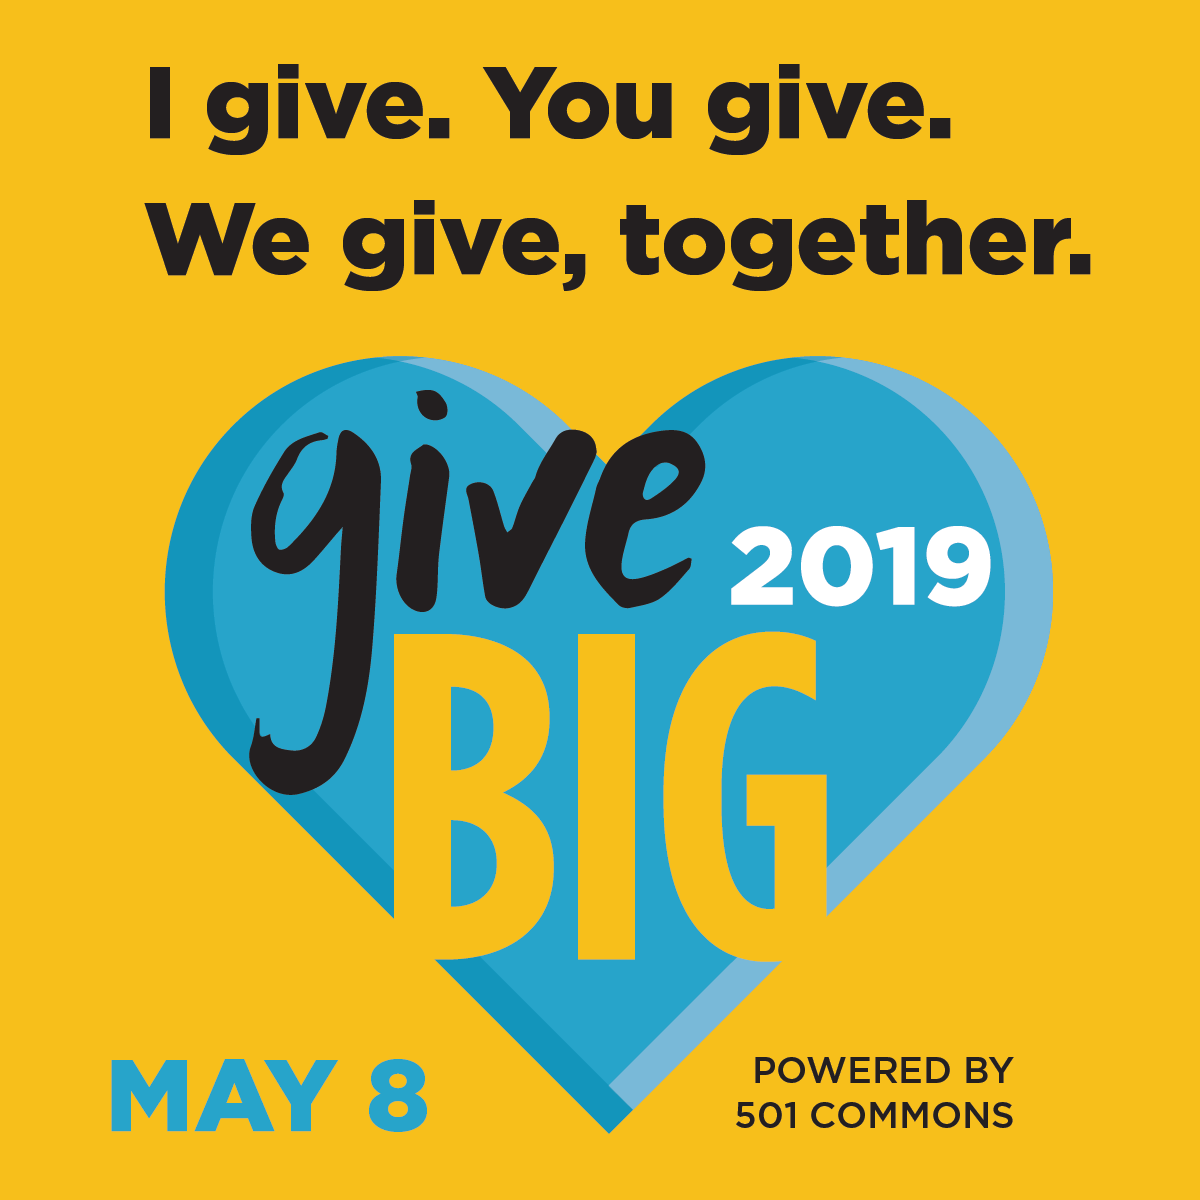 GIVE BIG 2019 May 8, 2019 | 24-Hours of Giving When we all give together, we GiveBIG. This is the legacy we are continuing with GiveBIG 2019. Join us on Wednesday, May 8th for a 24-hour display of community and generosity. Make a special donation to AtWork!, there is no limit to the amount of good you can do.